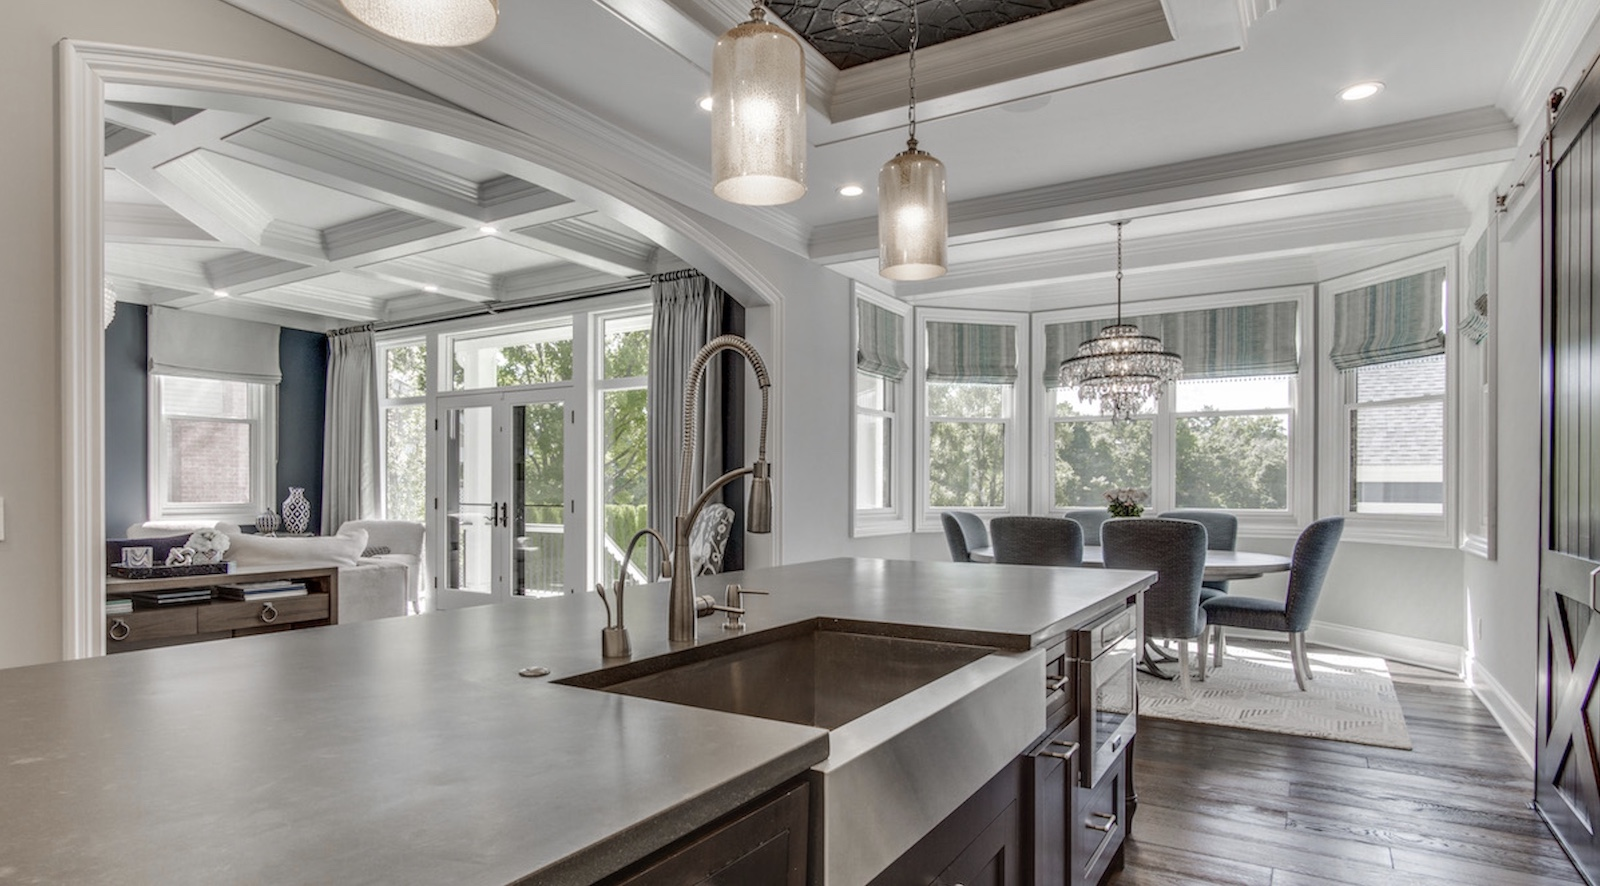 View from the kitchen to the dining area in Jaime, designed by TK Design & Associates